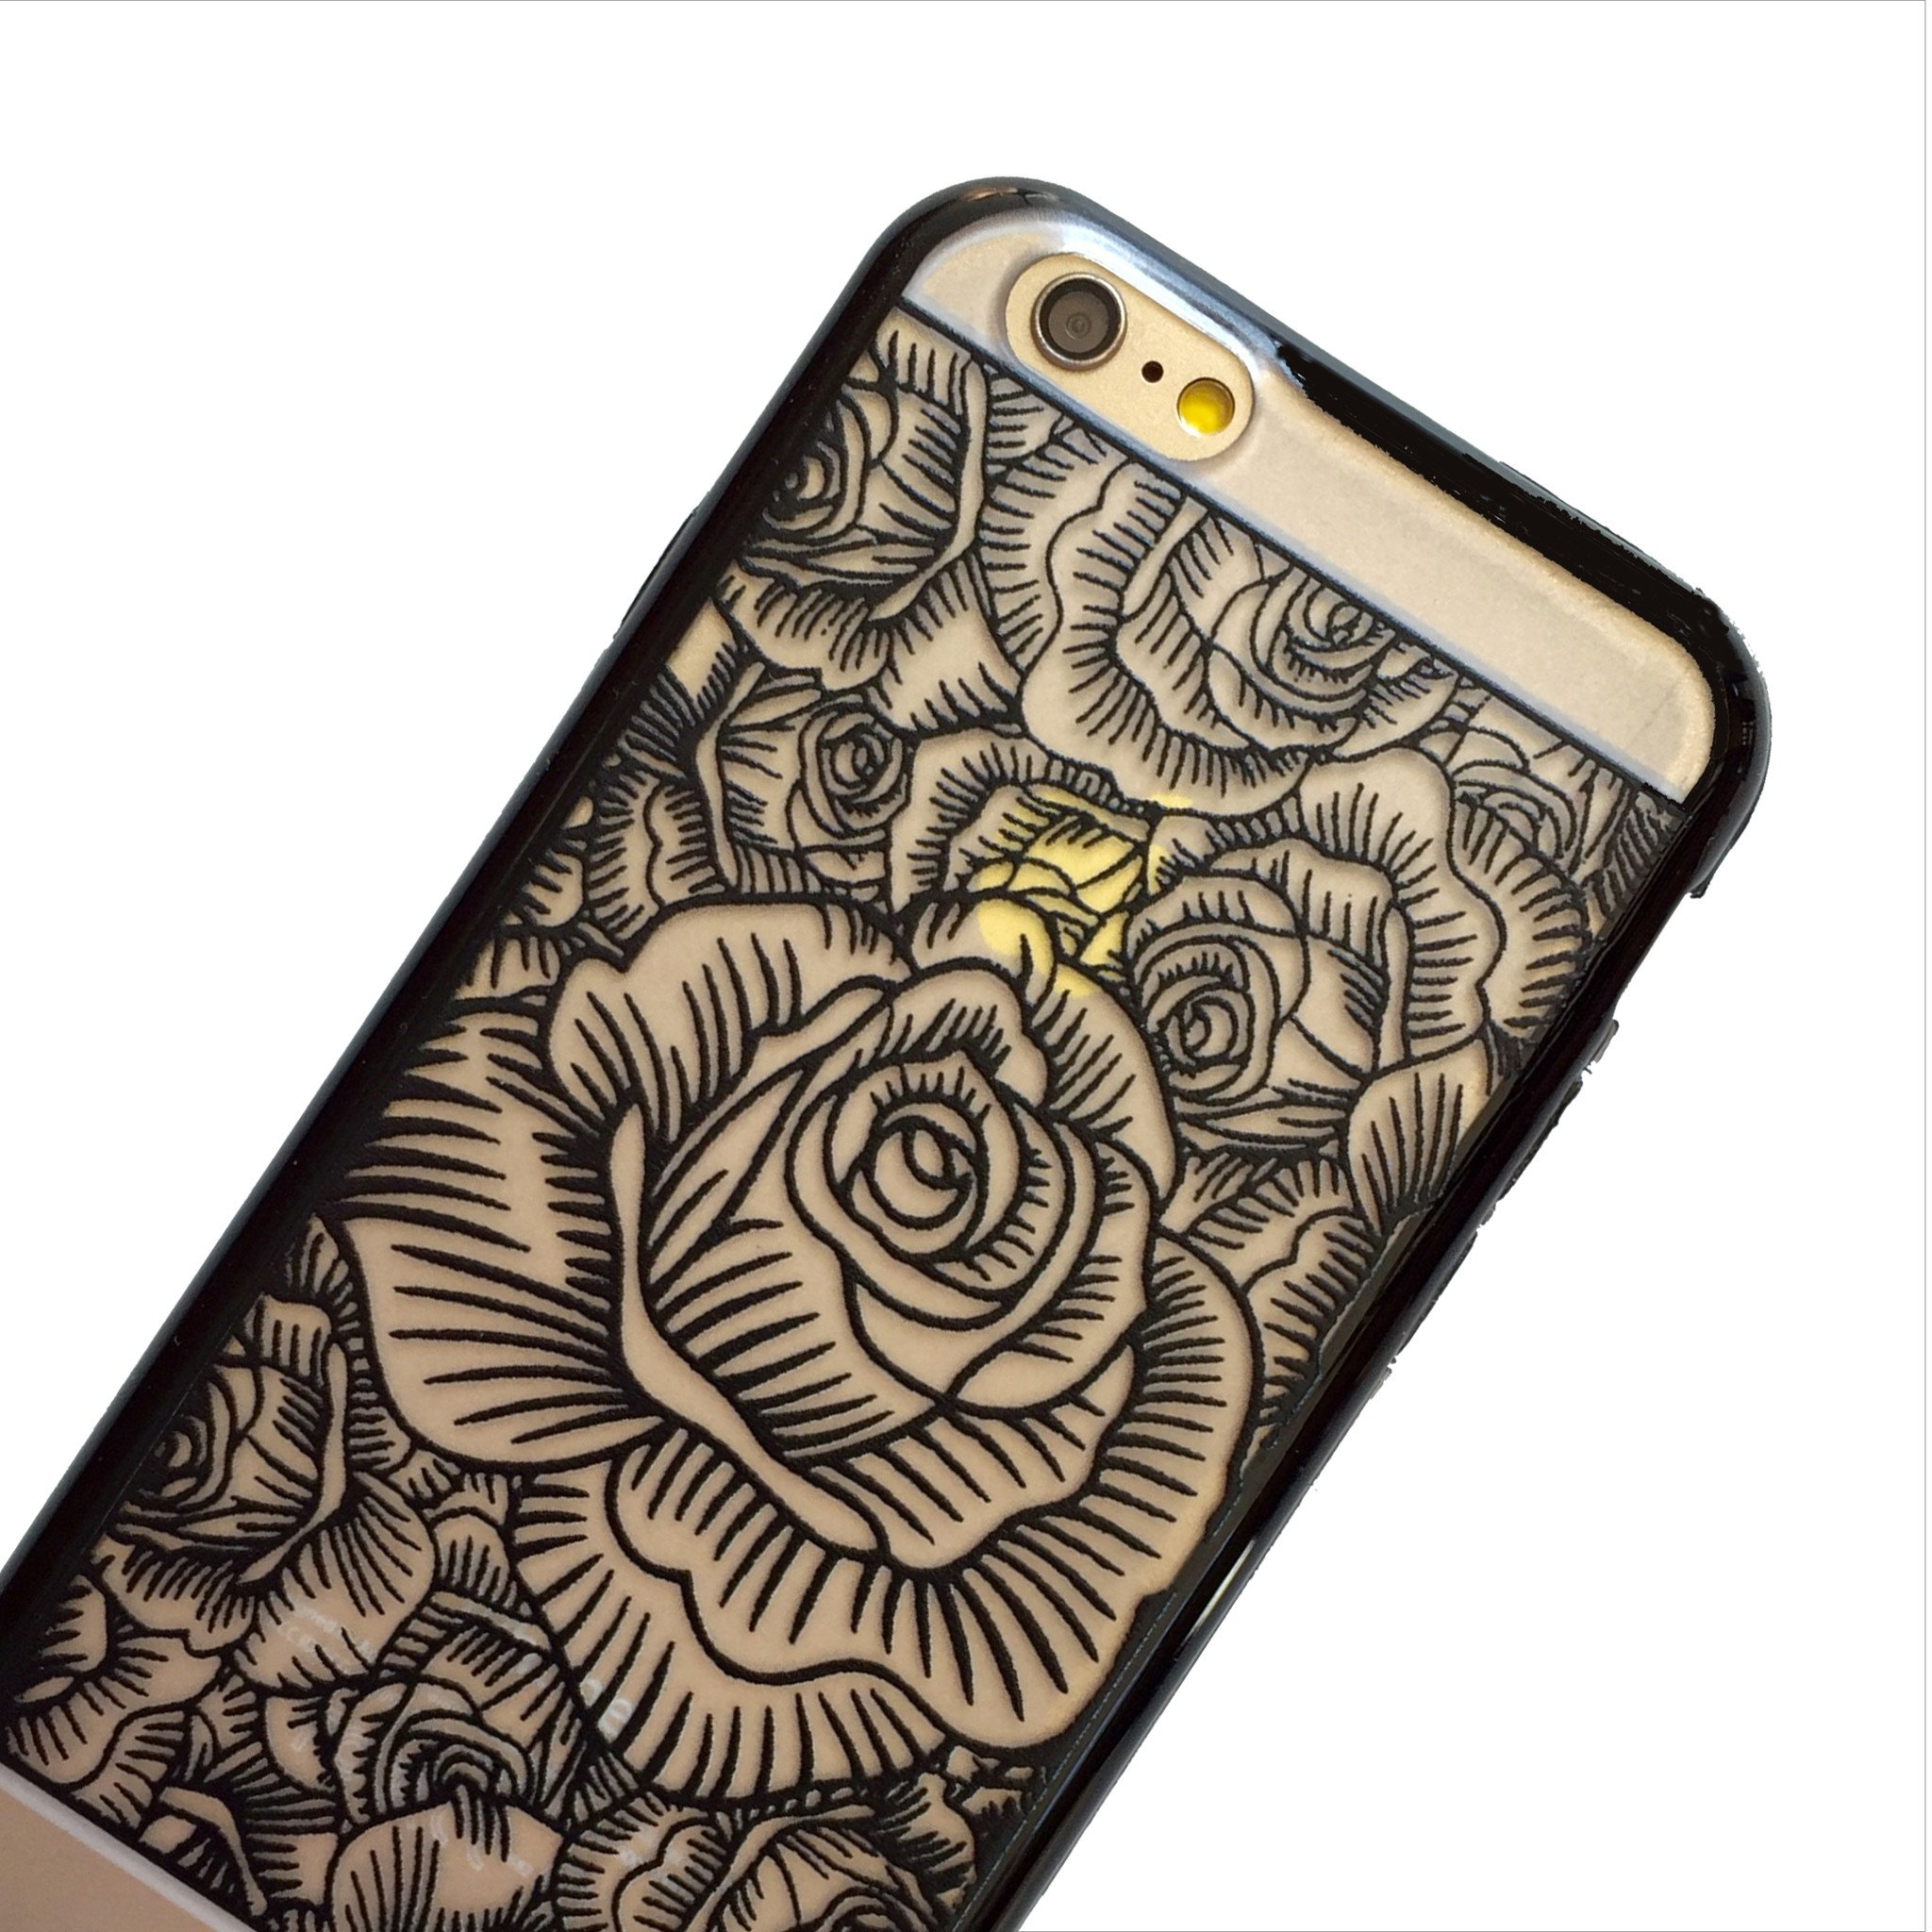 2048x2048 Black Blooming Roses Phone Case Mahalocases